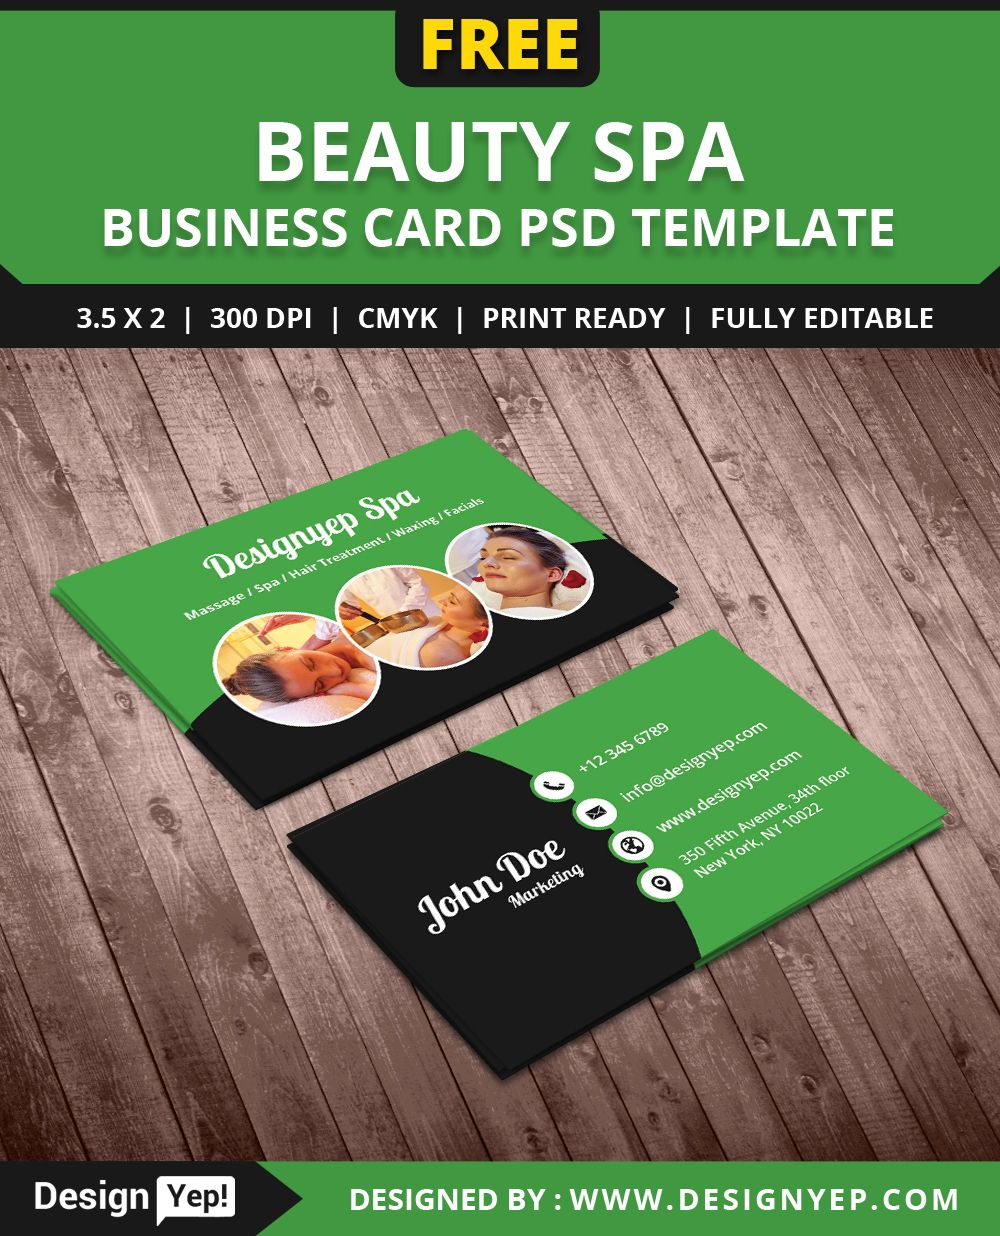 Free Beauty Spa Business Card Psd Template Designyep